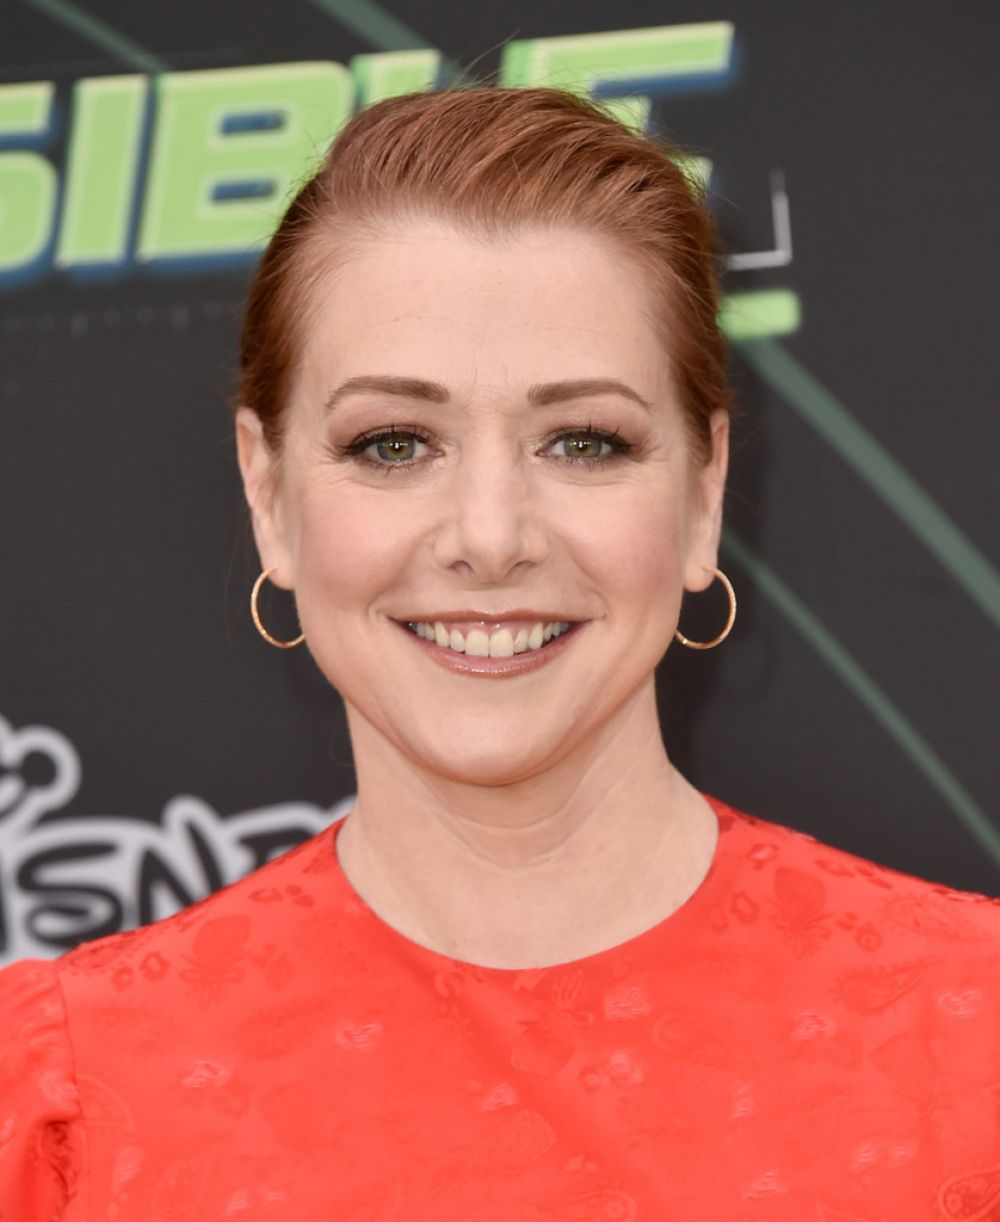 Alyson Hannigan, film, television, How I Met Your Mother, American Pie